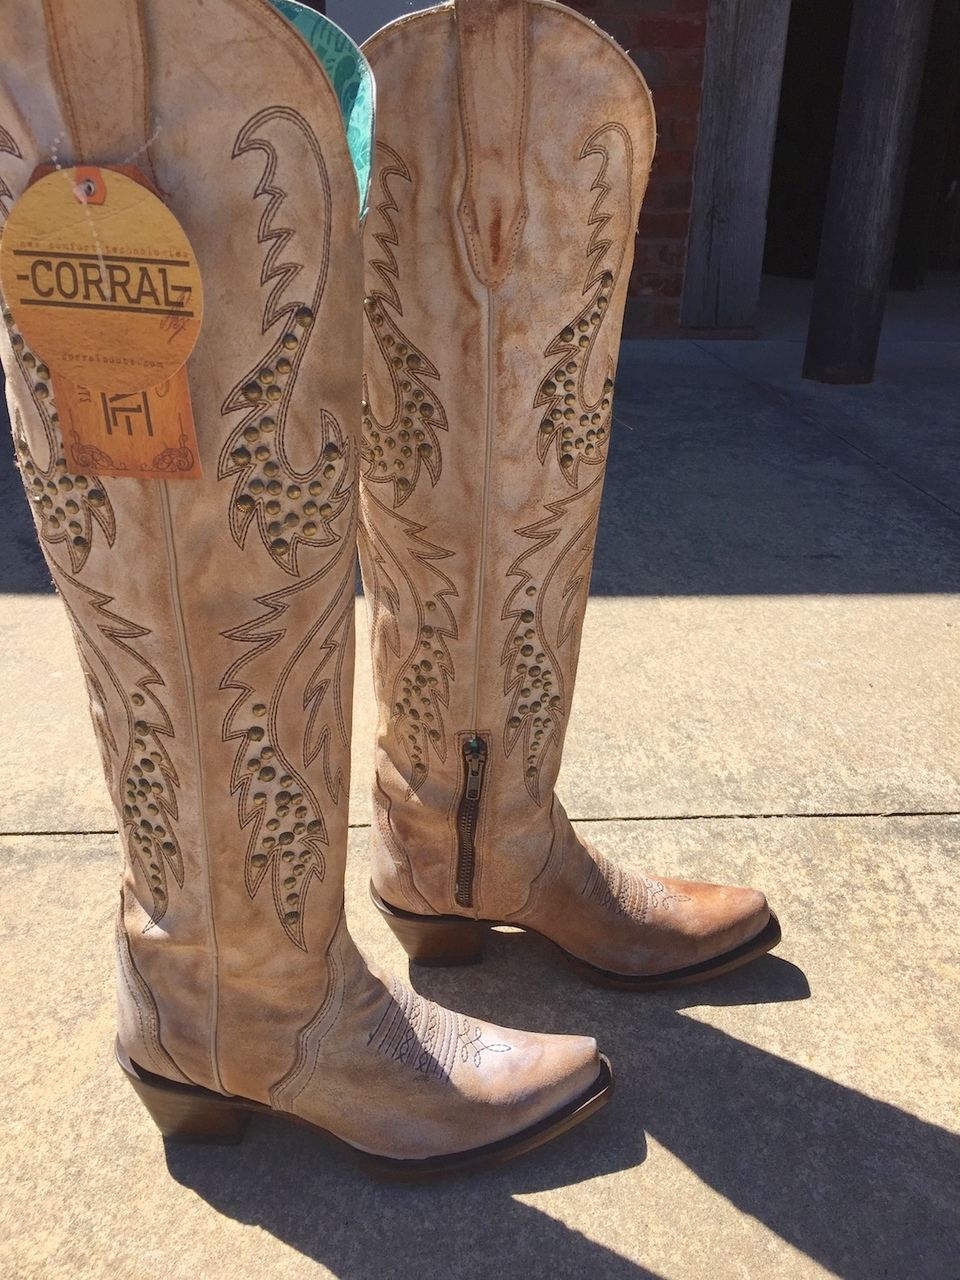 9ba082539e7b5 Corral Boots for Women | Corral Cowgirl Boots